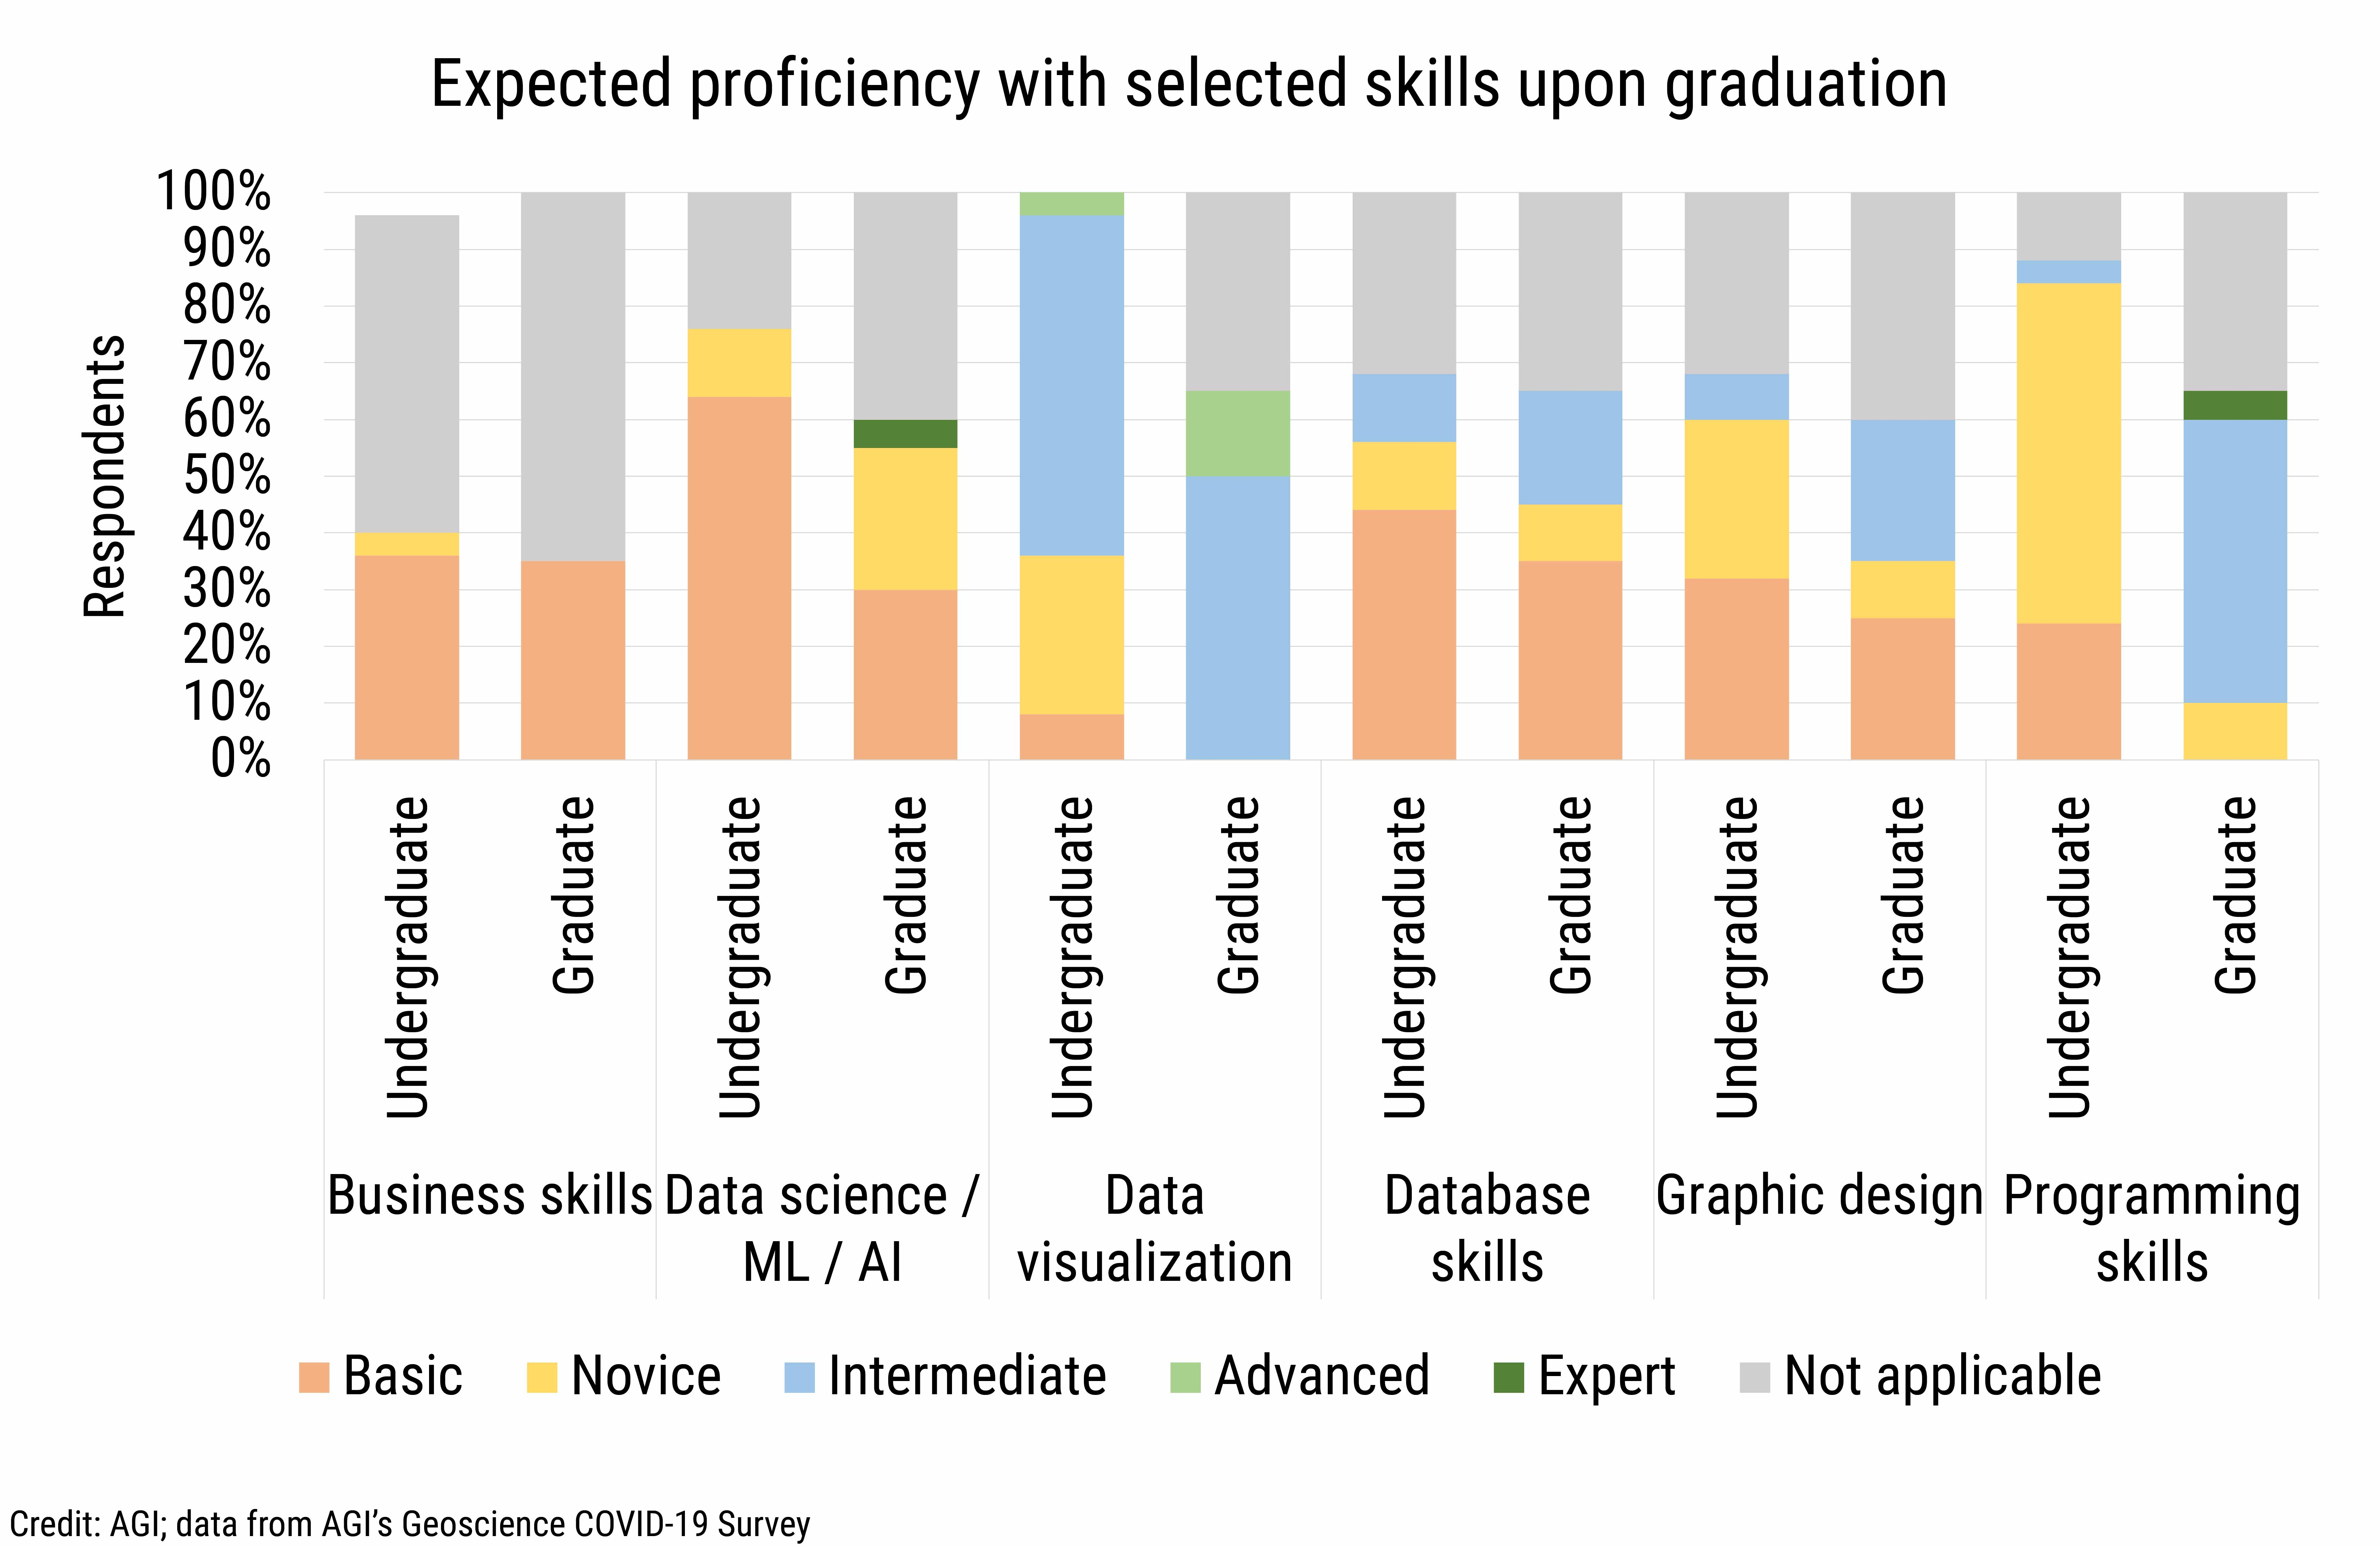 DB_2021-017 chart 03: Expected proficiency with selected skills upon graduation (Credit: AGI; data from AGI's Geoscience COVID-19 Survey)